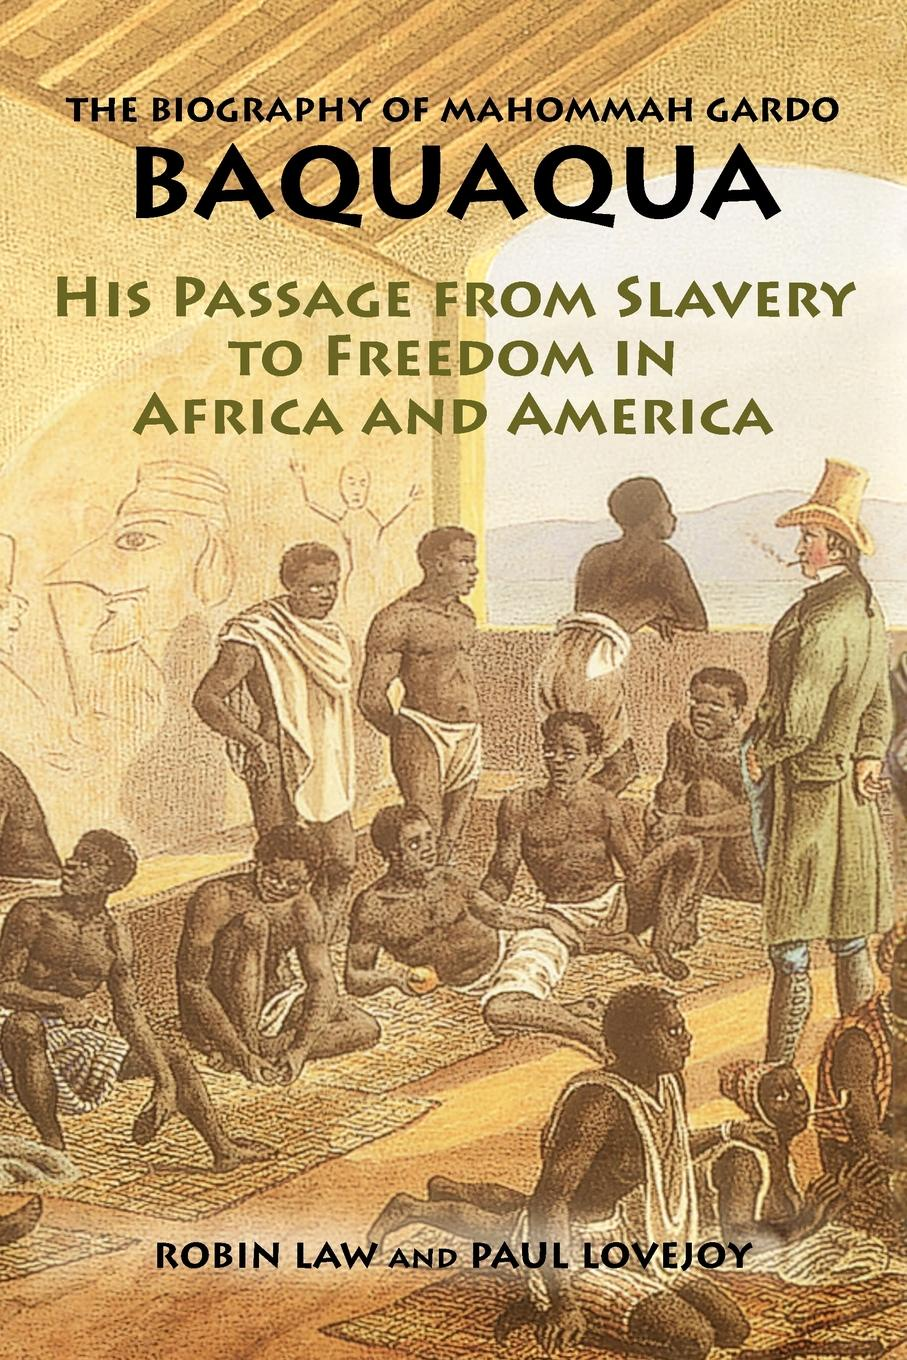 The Biography of Mahommah Gardo Baquaqua. His Passage from Slavery to Freedom in Africa and America the biography of mahommah gardo baquaqua his passage from slavery to freedom in africa and america